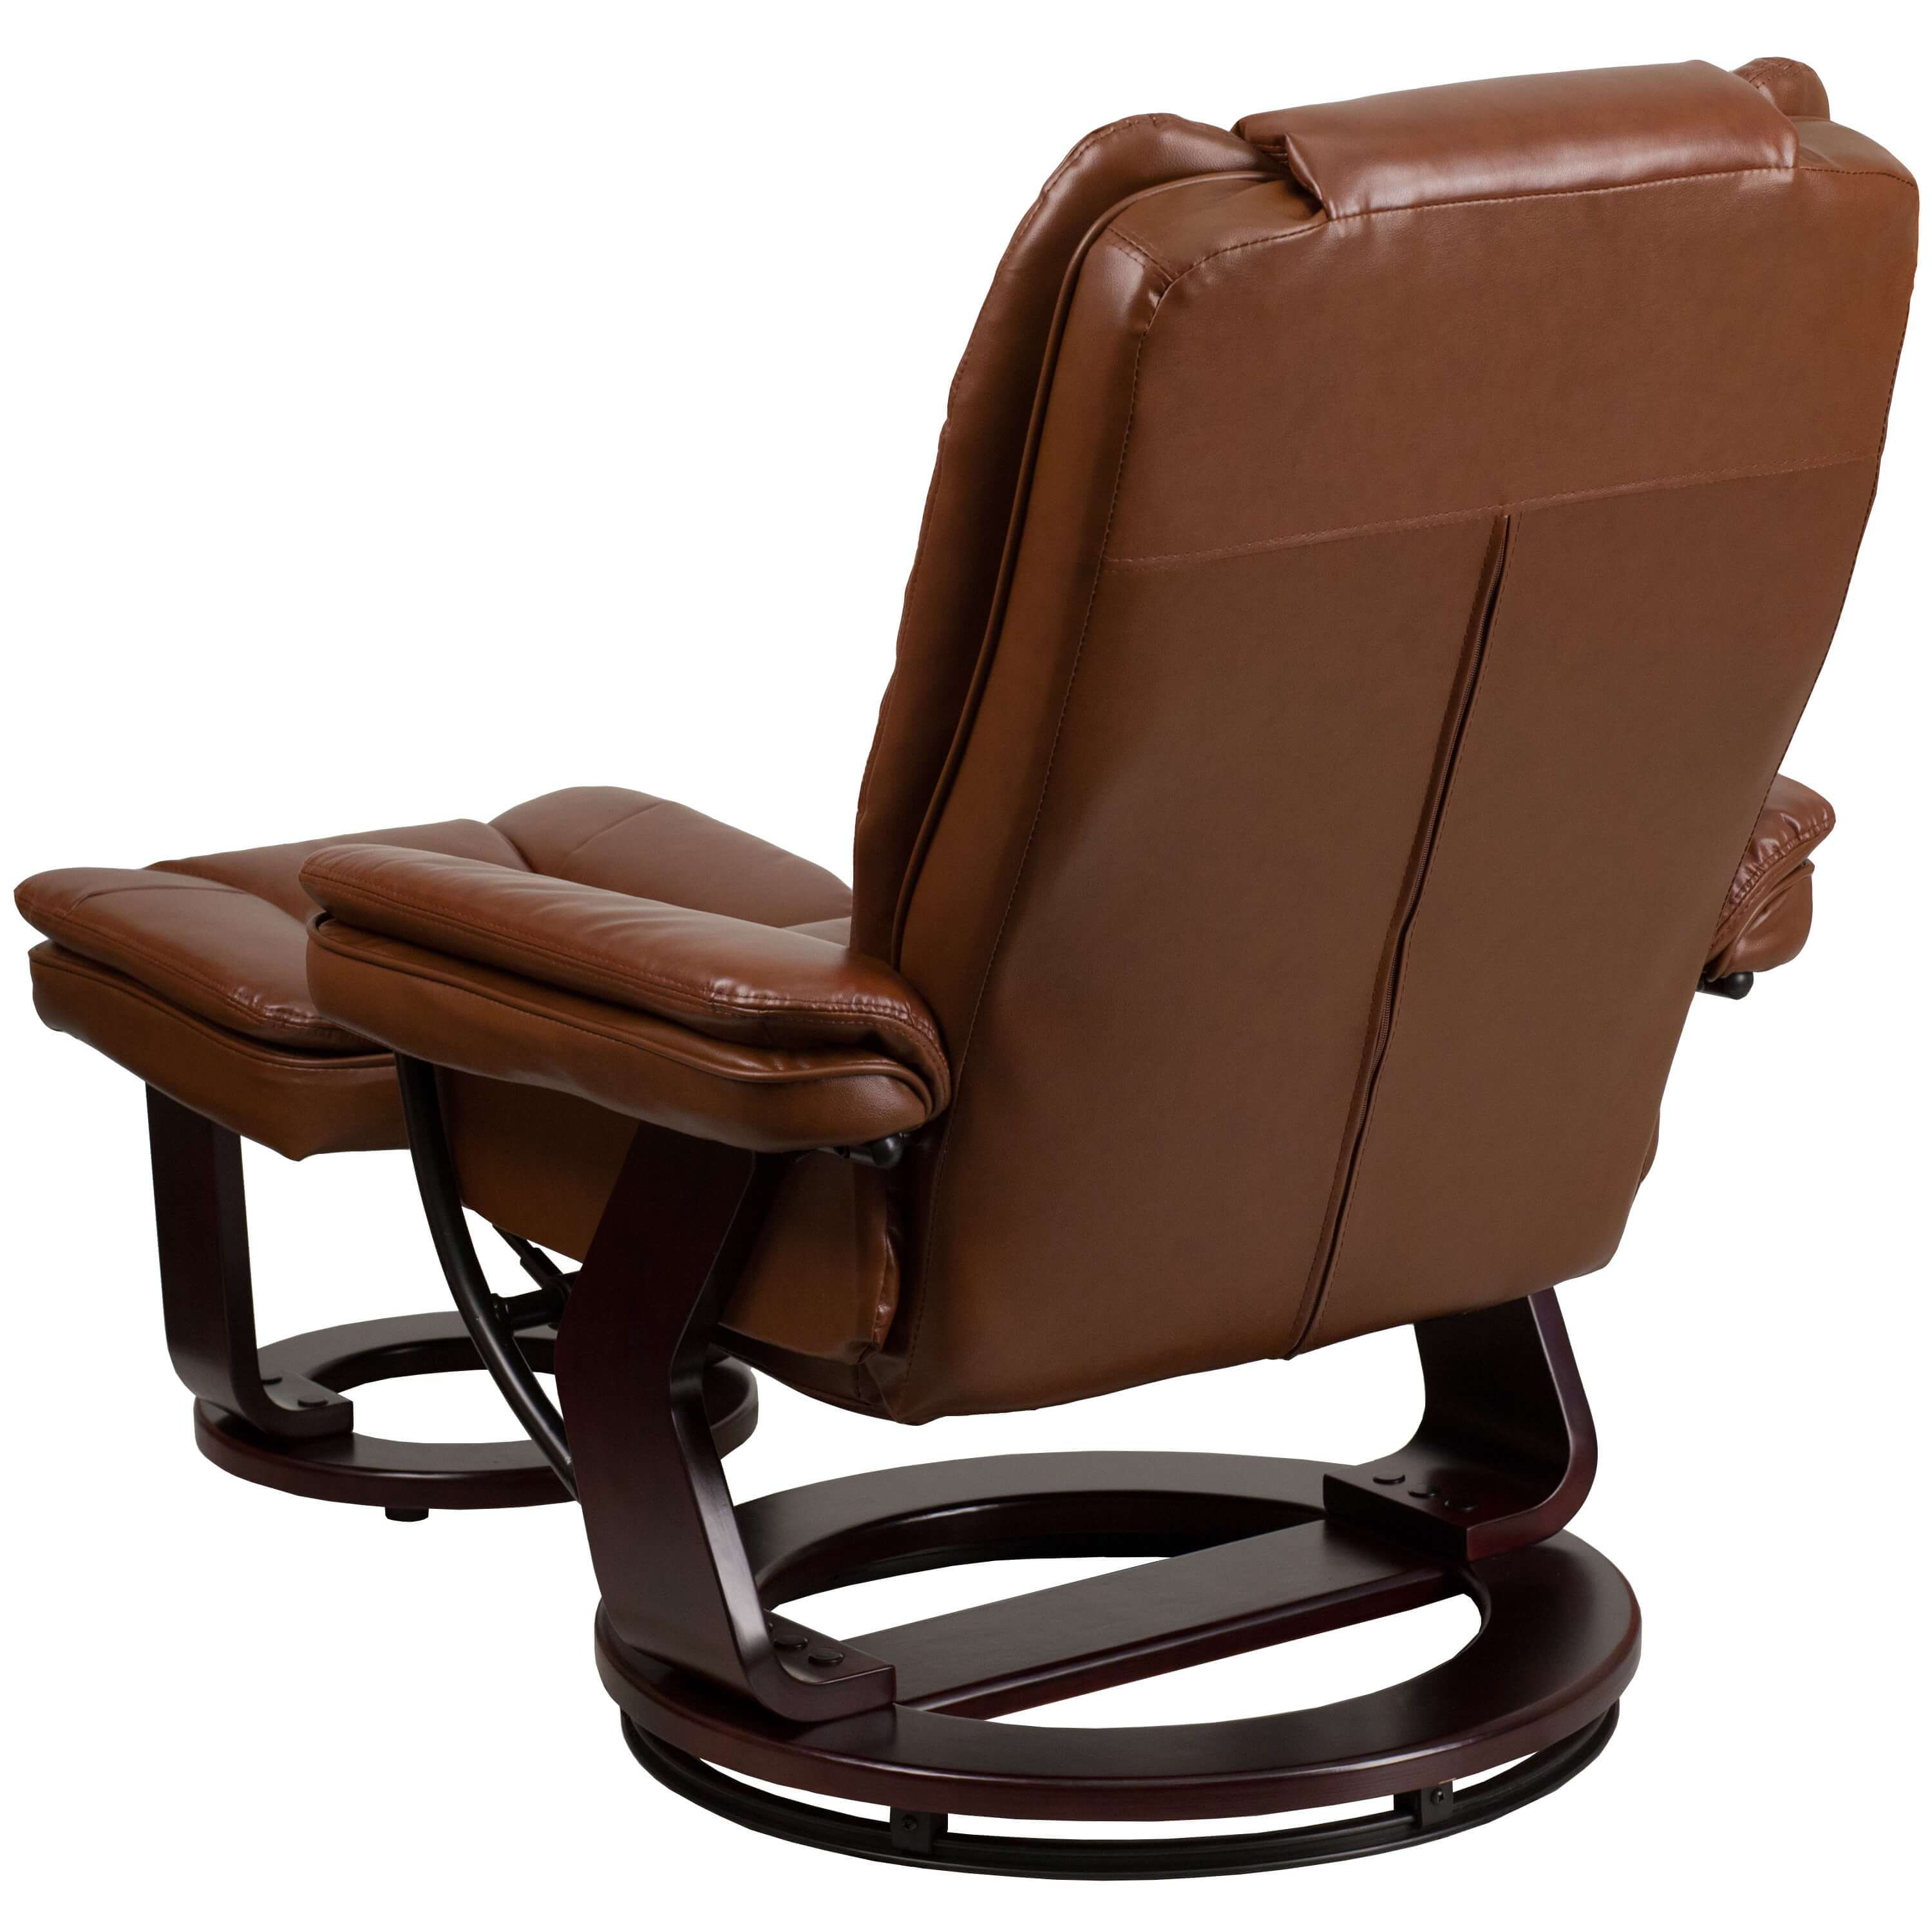 Contemporary recliner chair back view